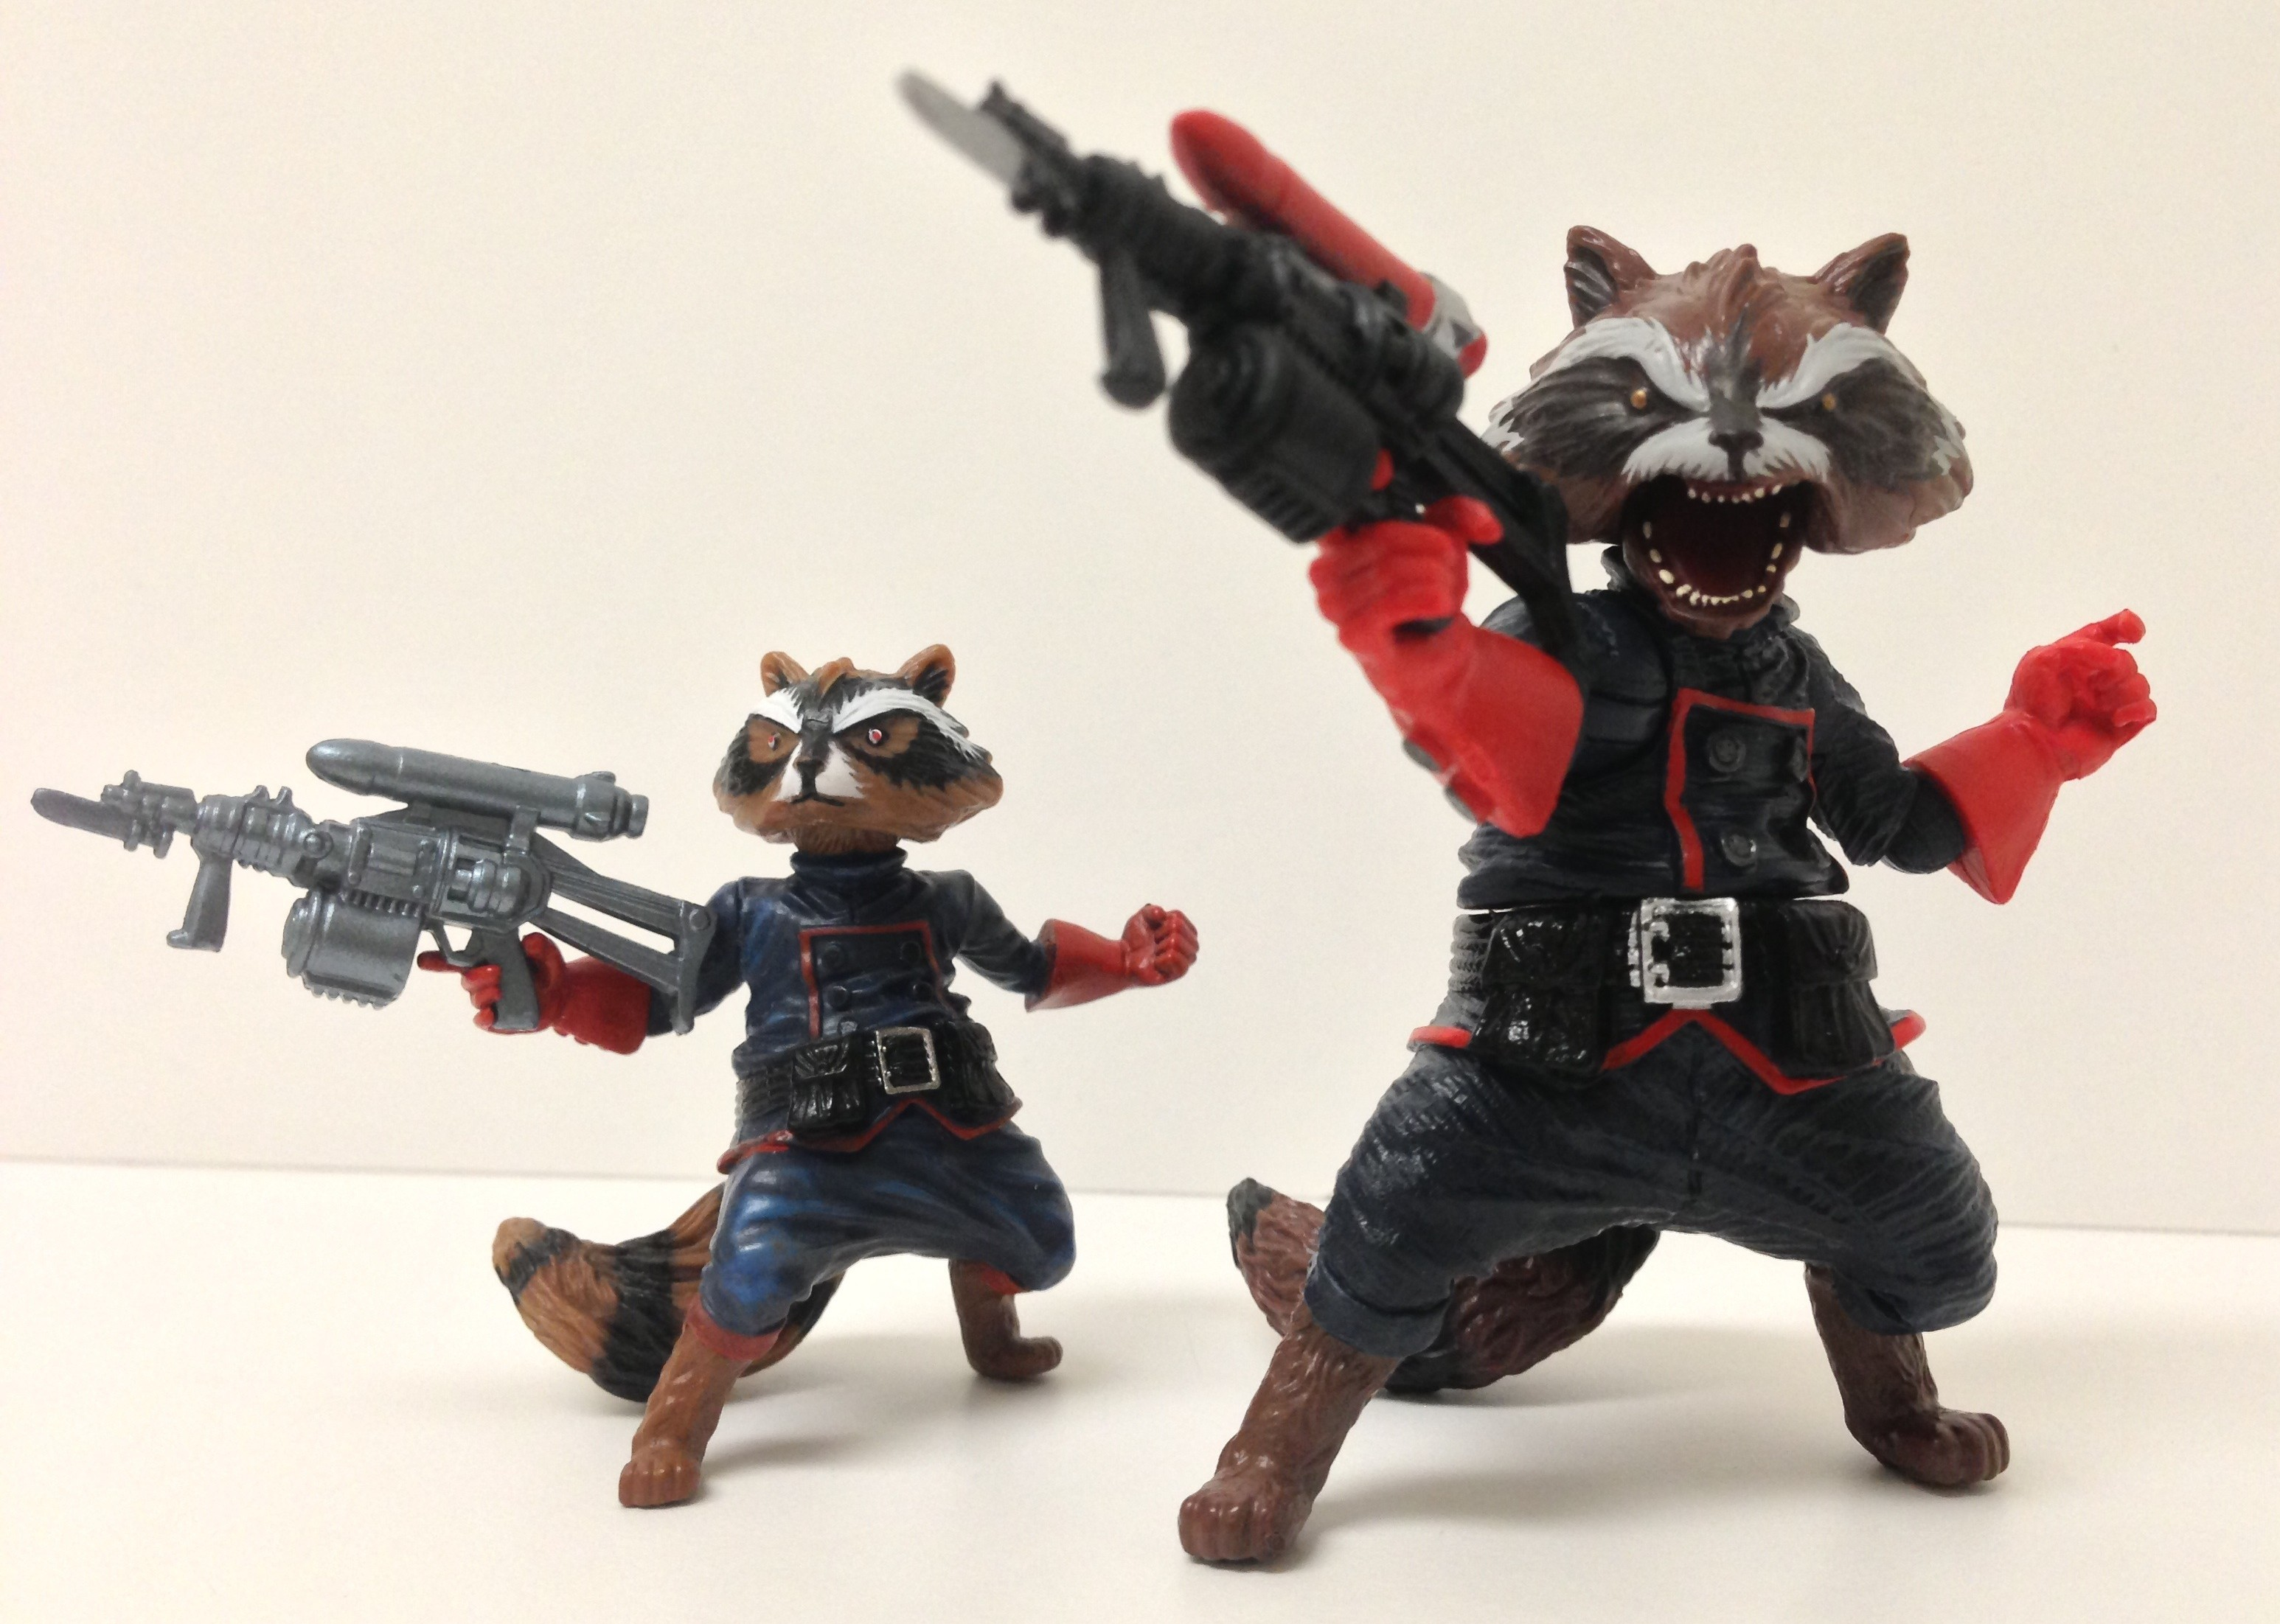 Marvel Legends Rocket Raccoon & Marvel Universe Rocket Raccoon Comparison Photo